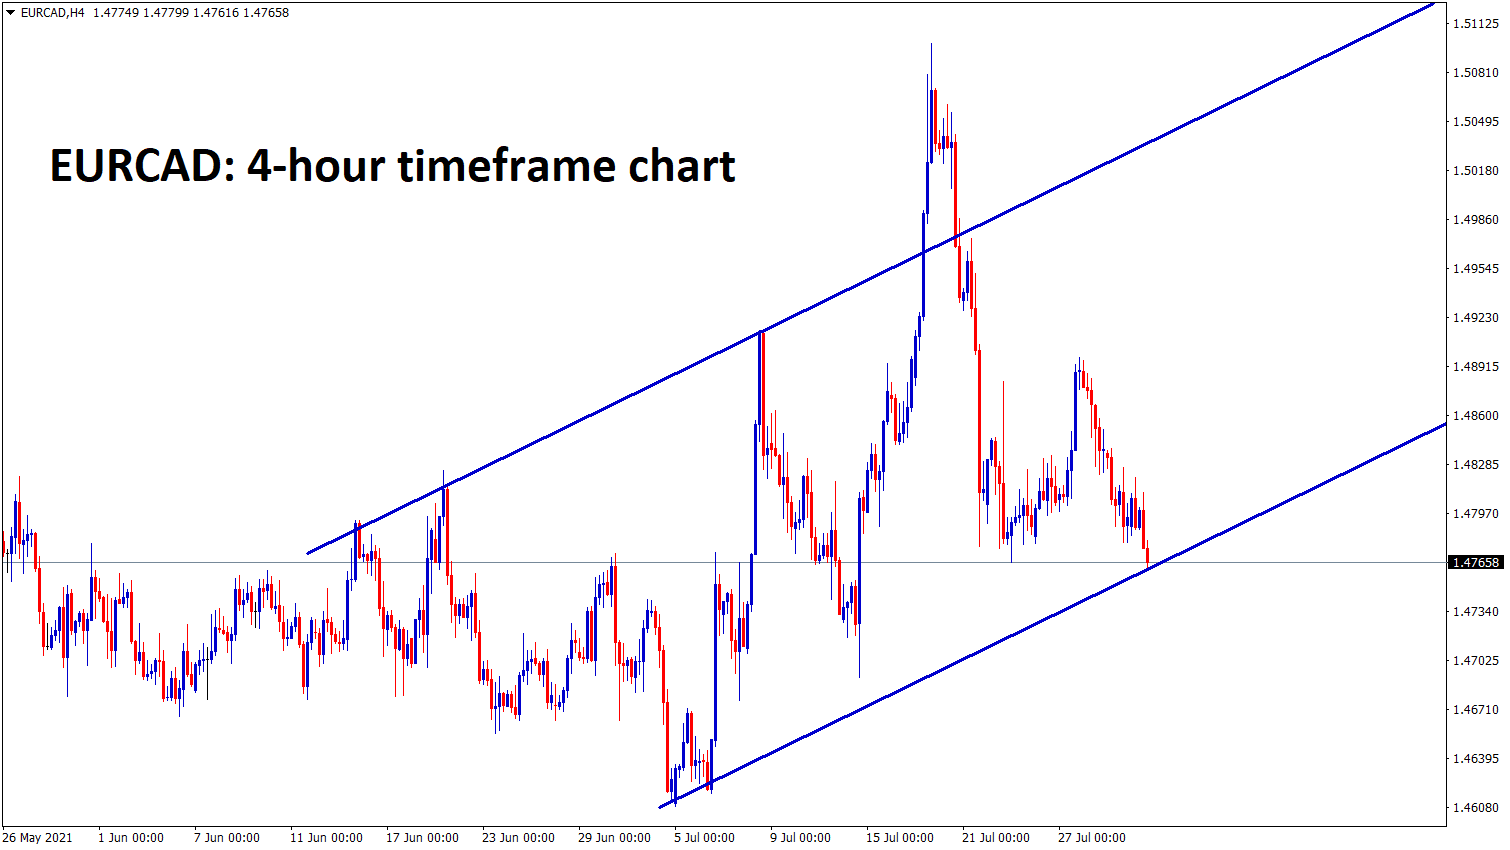 EURCAD is standing at the higher low zone of the Up trend line